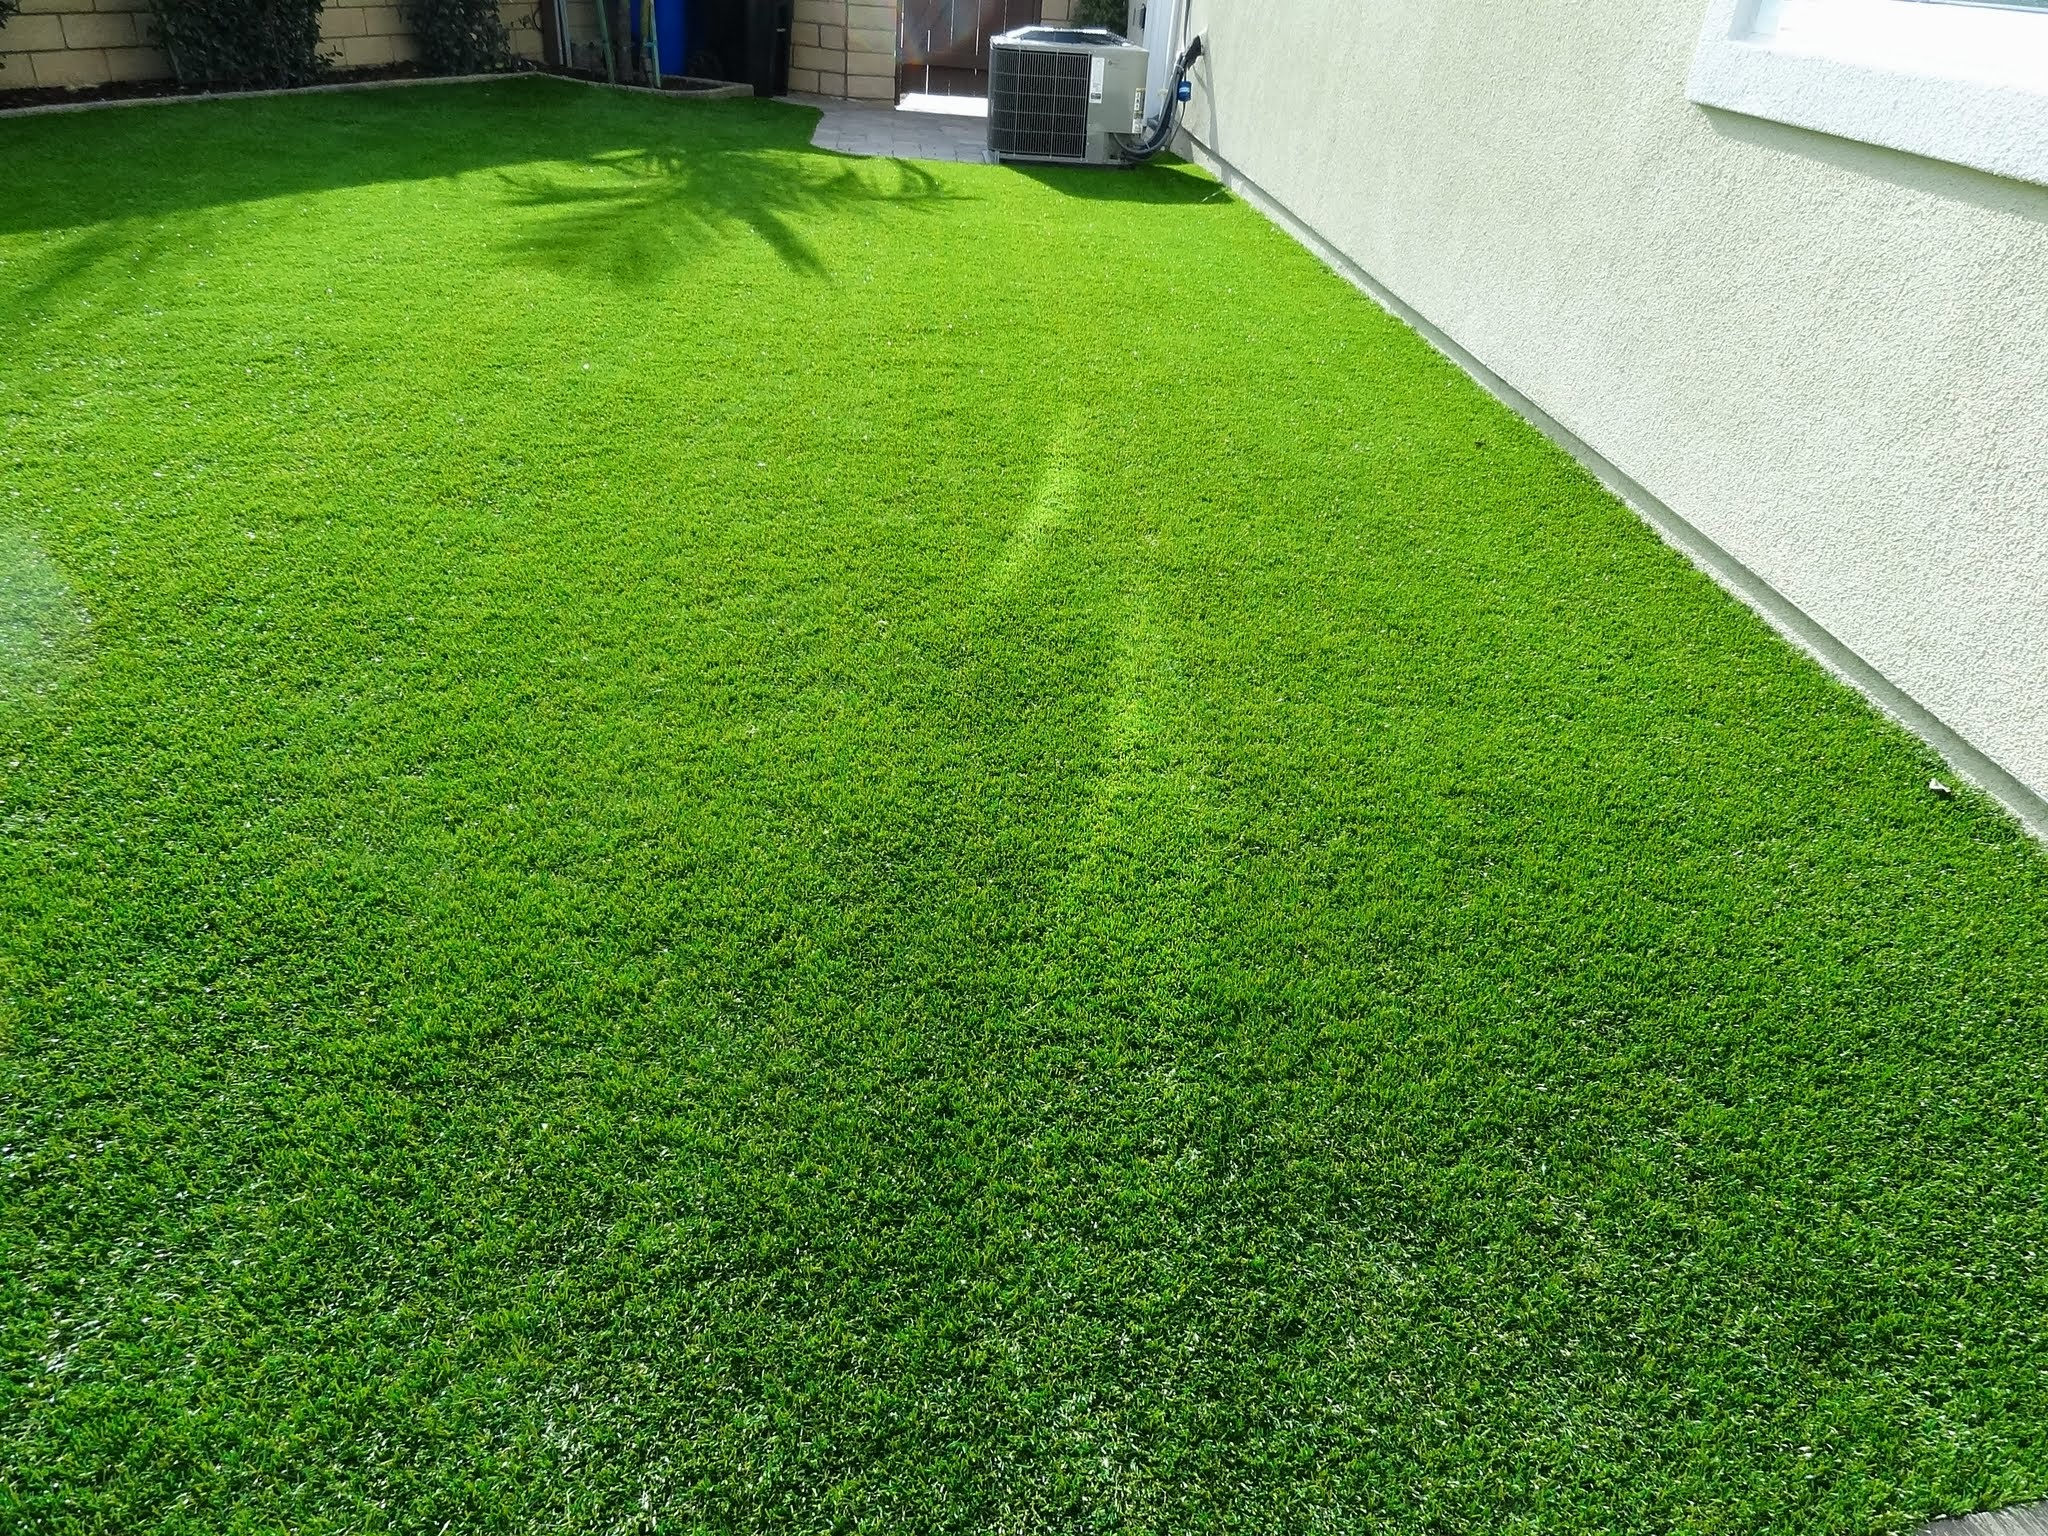 Artificial Grass Melting  Burning Heres How To Fix It